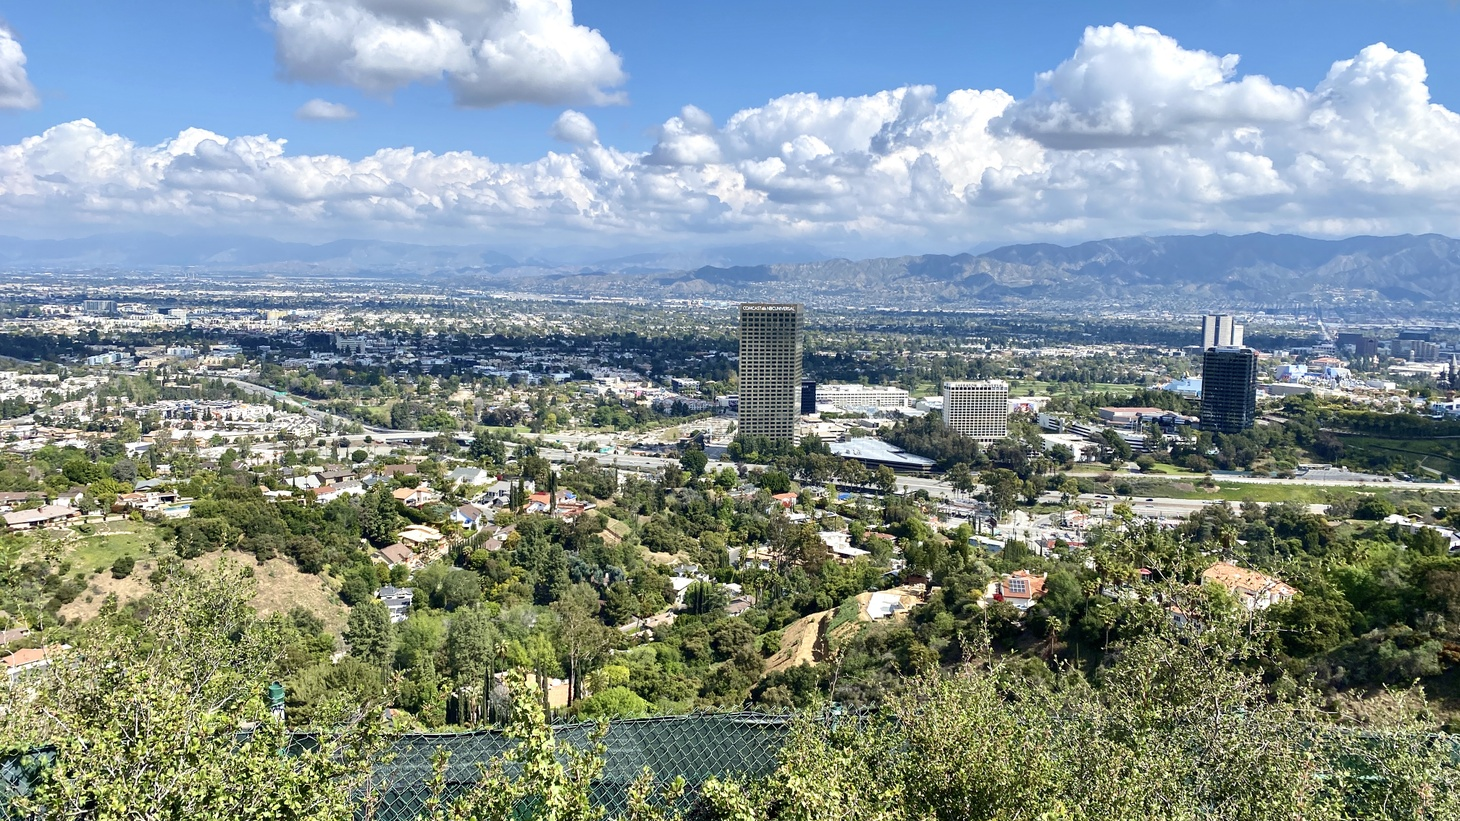 A view of Los Angeles from the Hollywood hills. The air is much fresher during this pandemic, since Angelenos are driving a lot less. Can we keep this up? March 21, 2020.